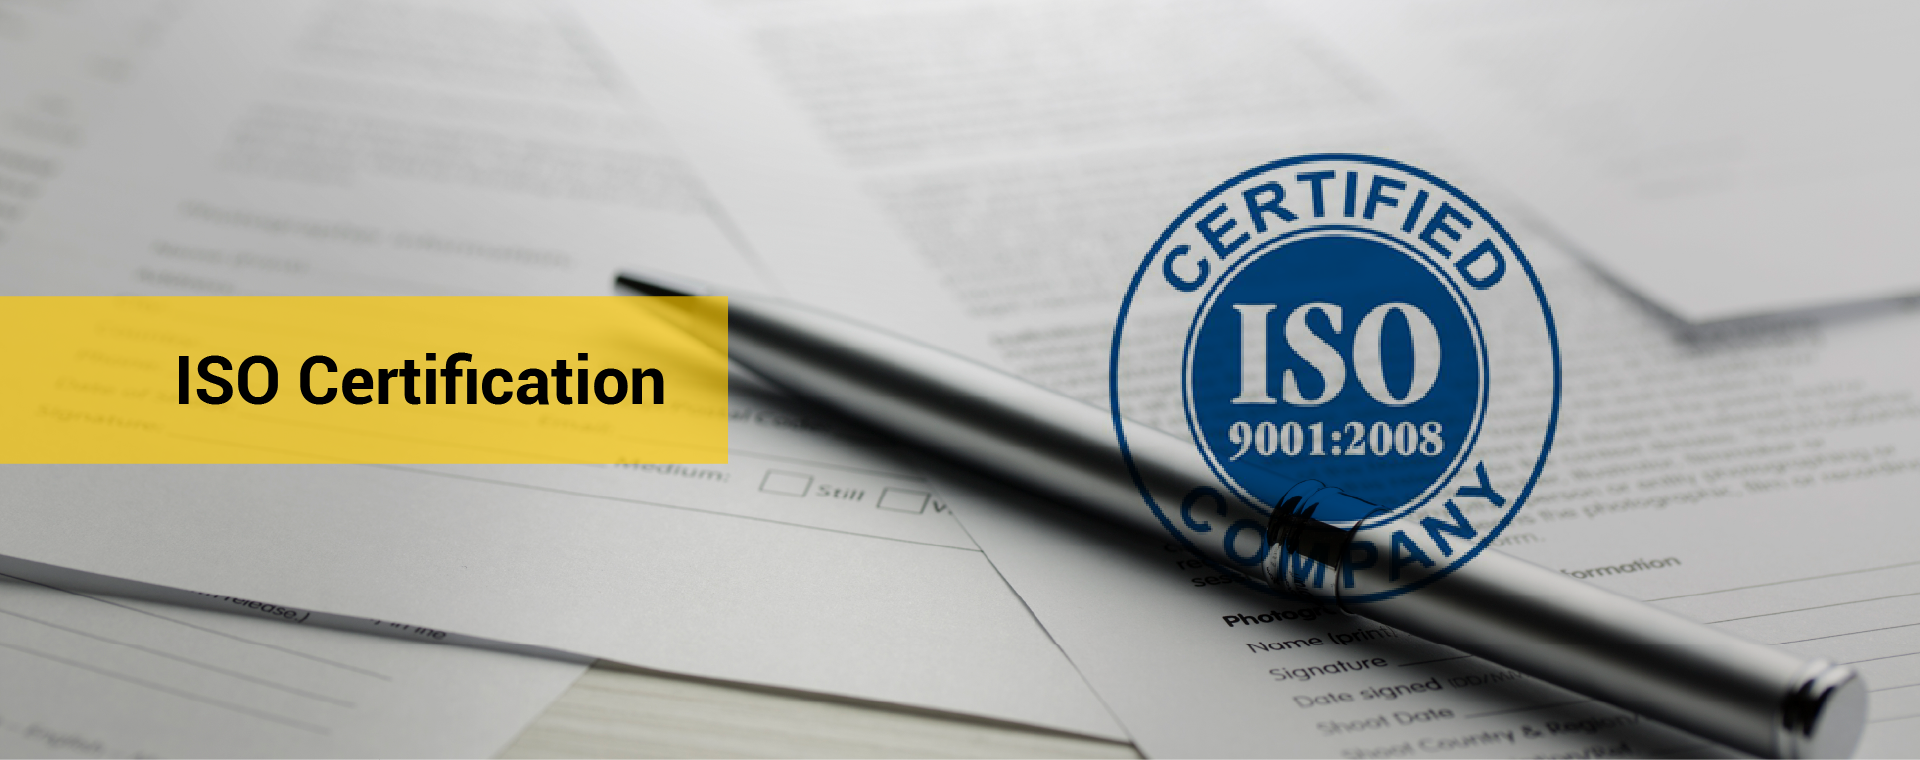 ISO Certification Consultants in Bangalore